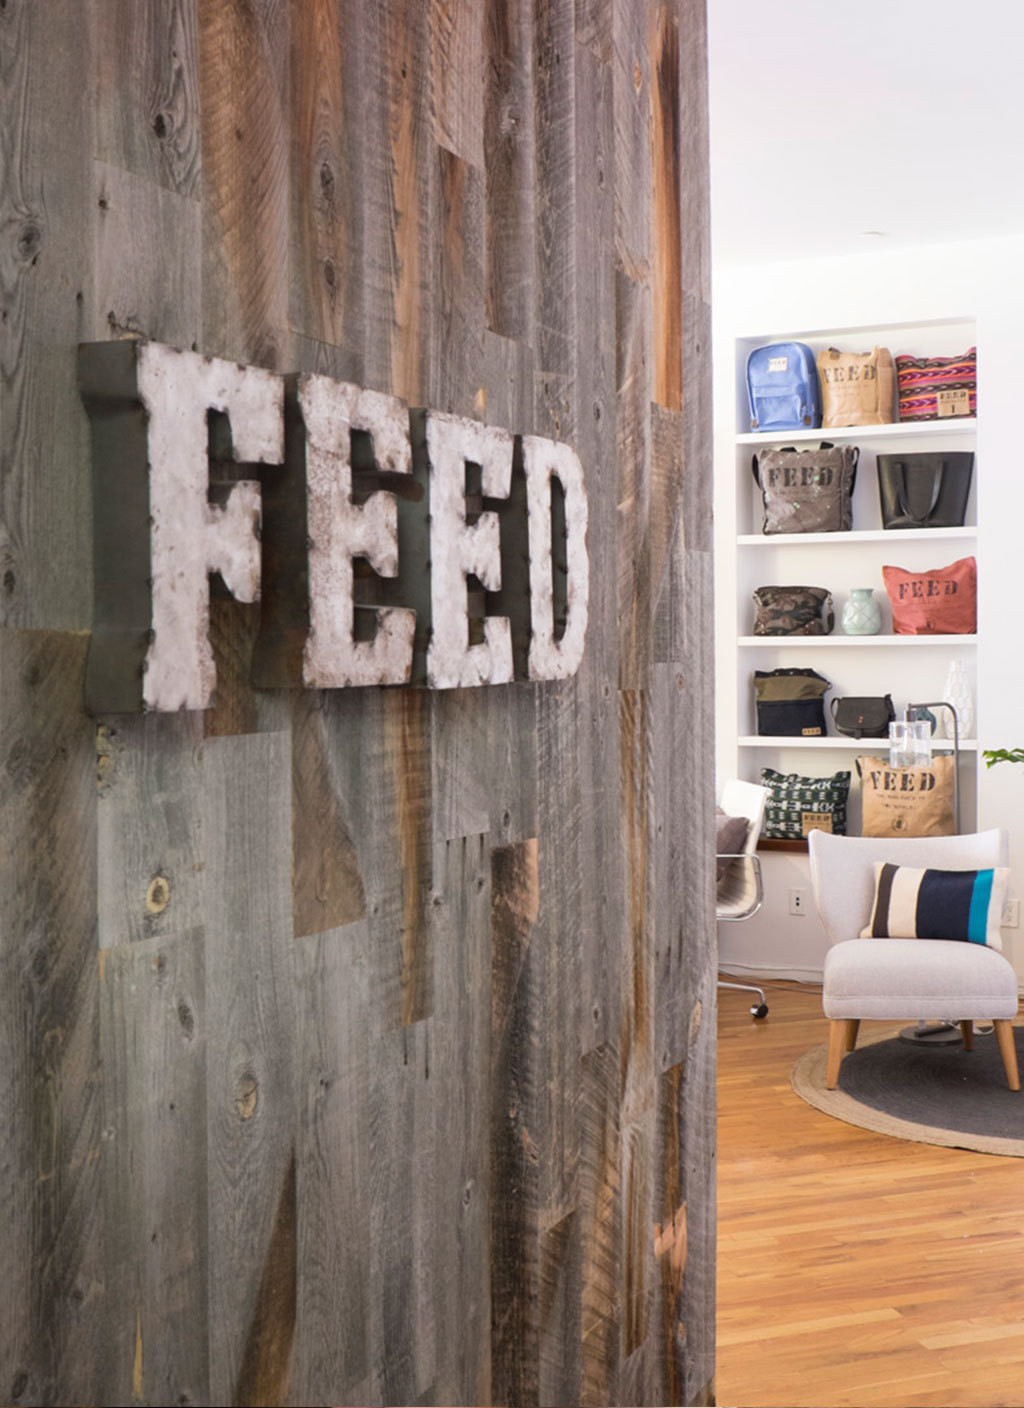 A reclaimed-wood wall bearing the organization's logo greets visitors to the office.